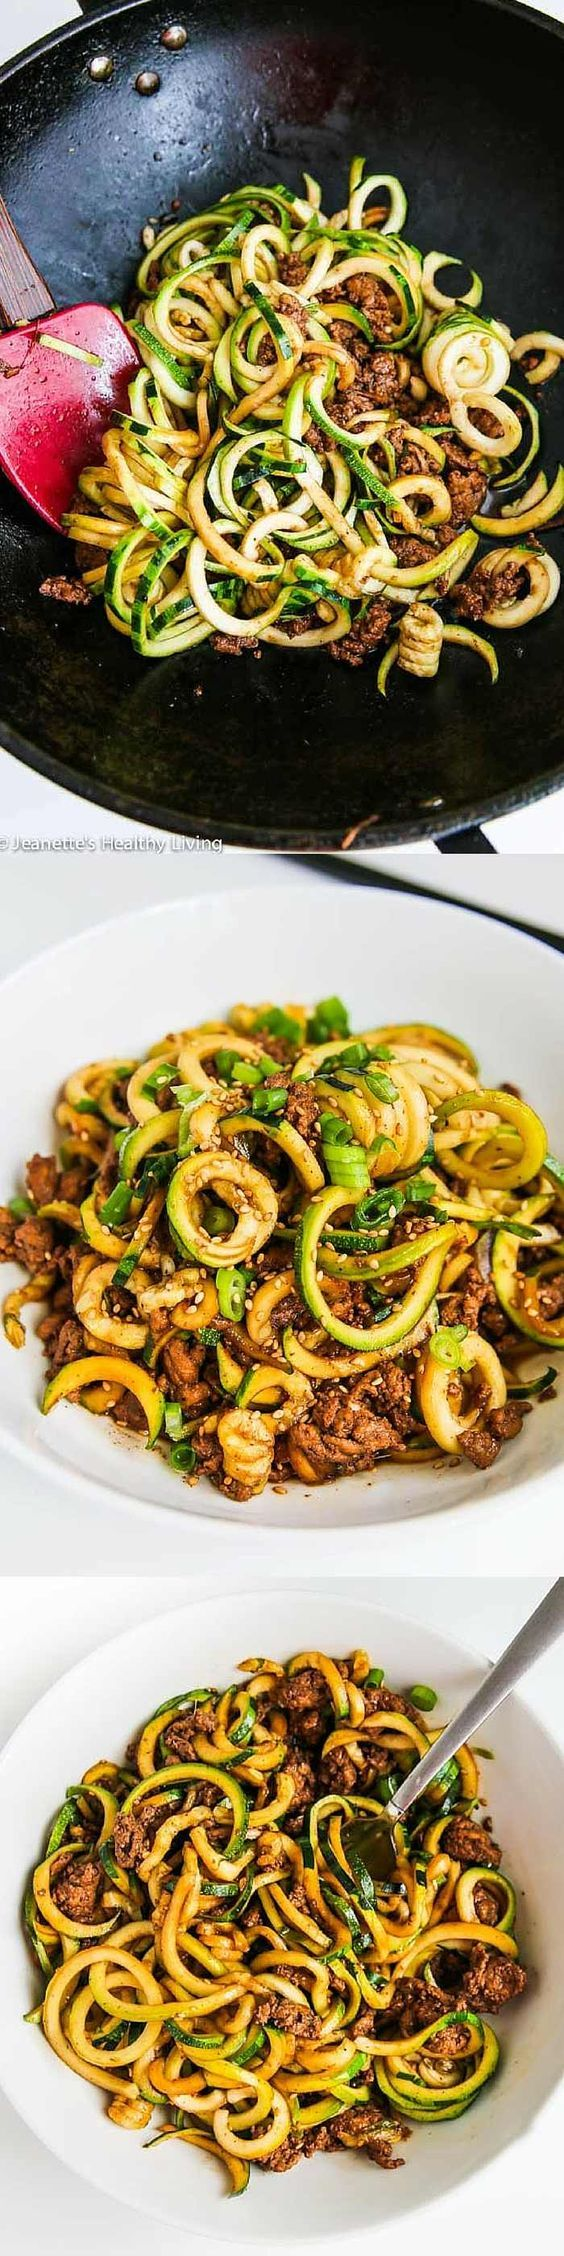 Chinese Five Spice Ground Turkey Zucchini Noodles Recipe ~ http://jeanetteshealthyliving.com